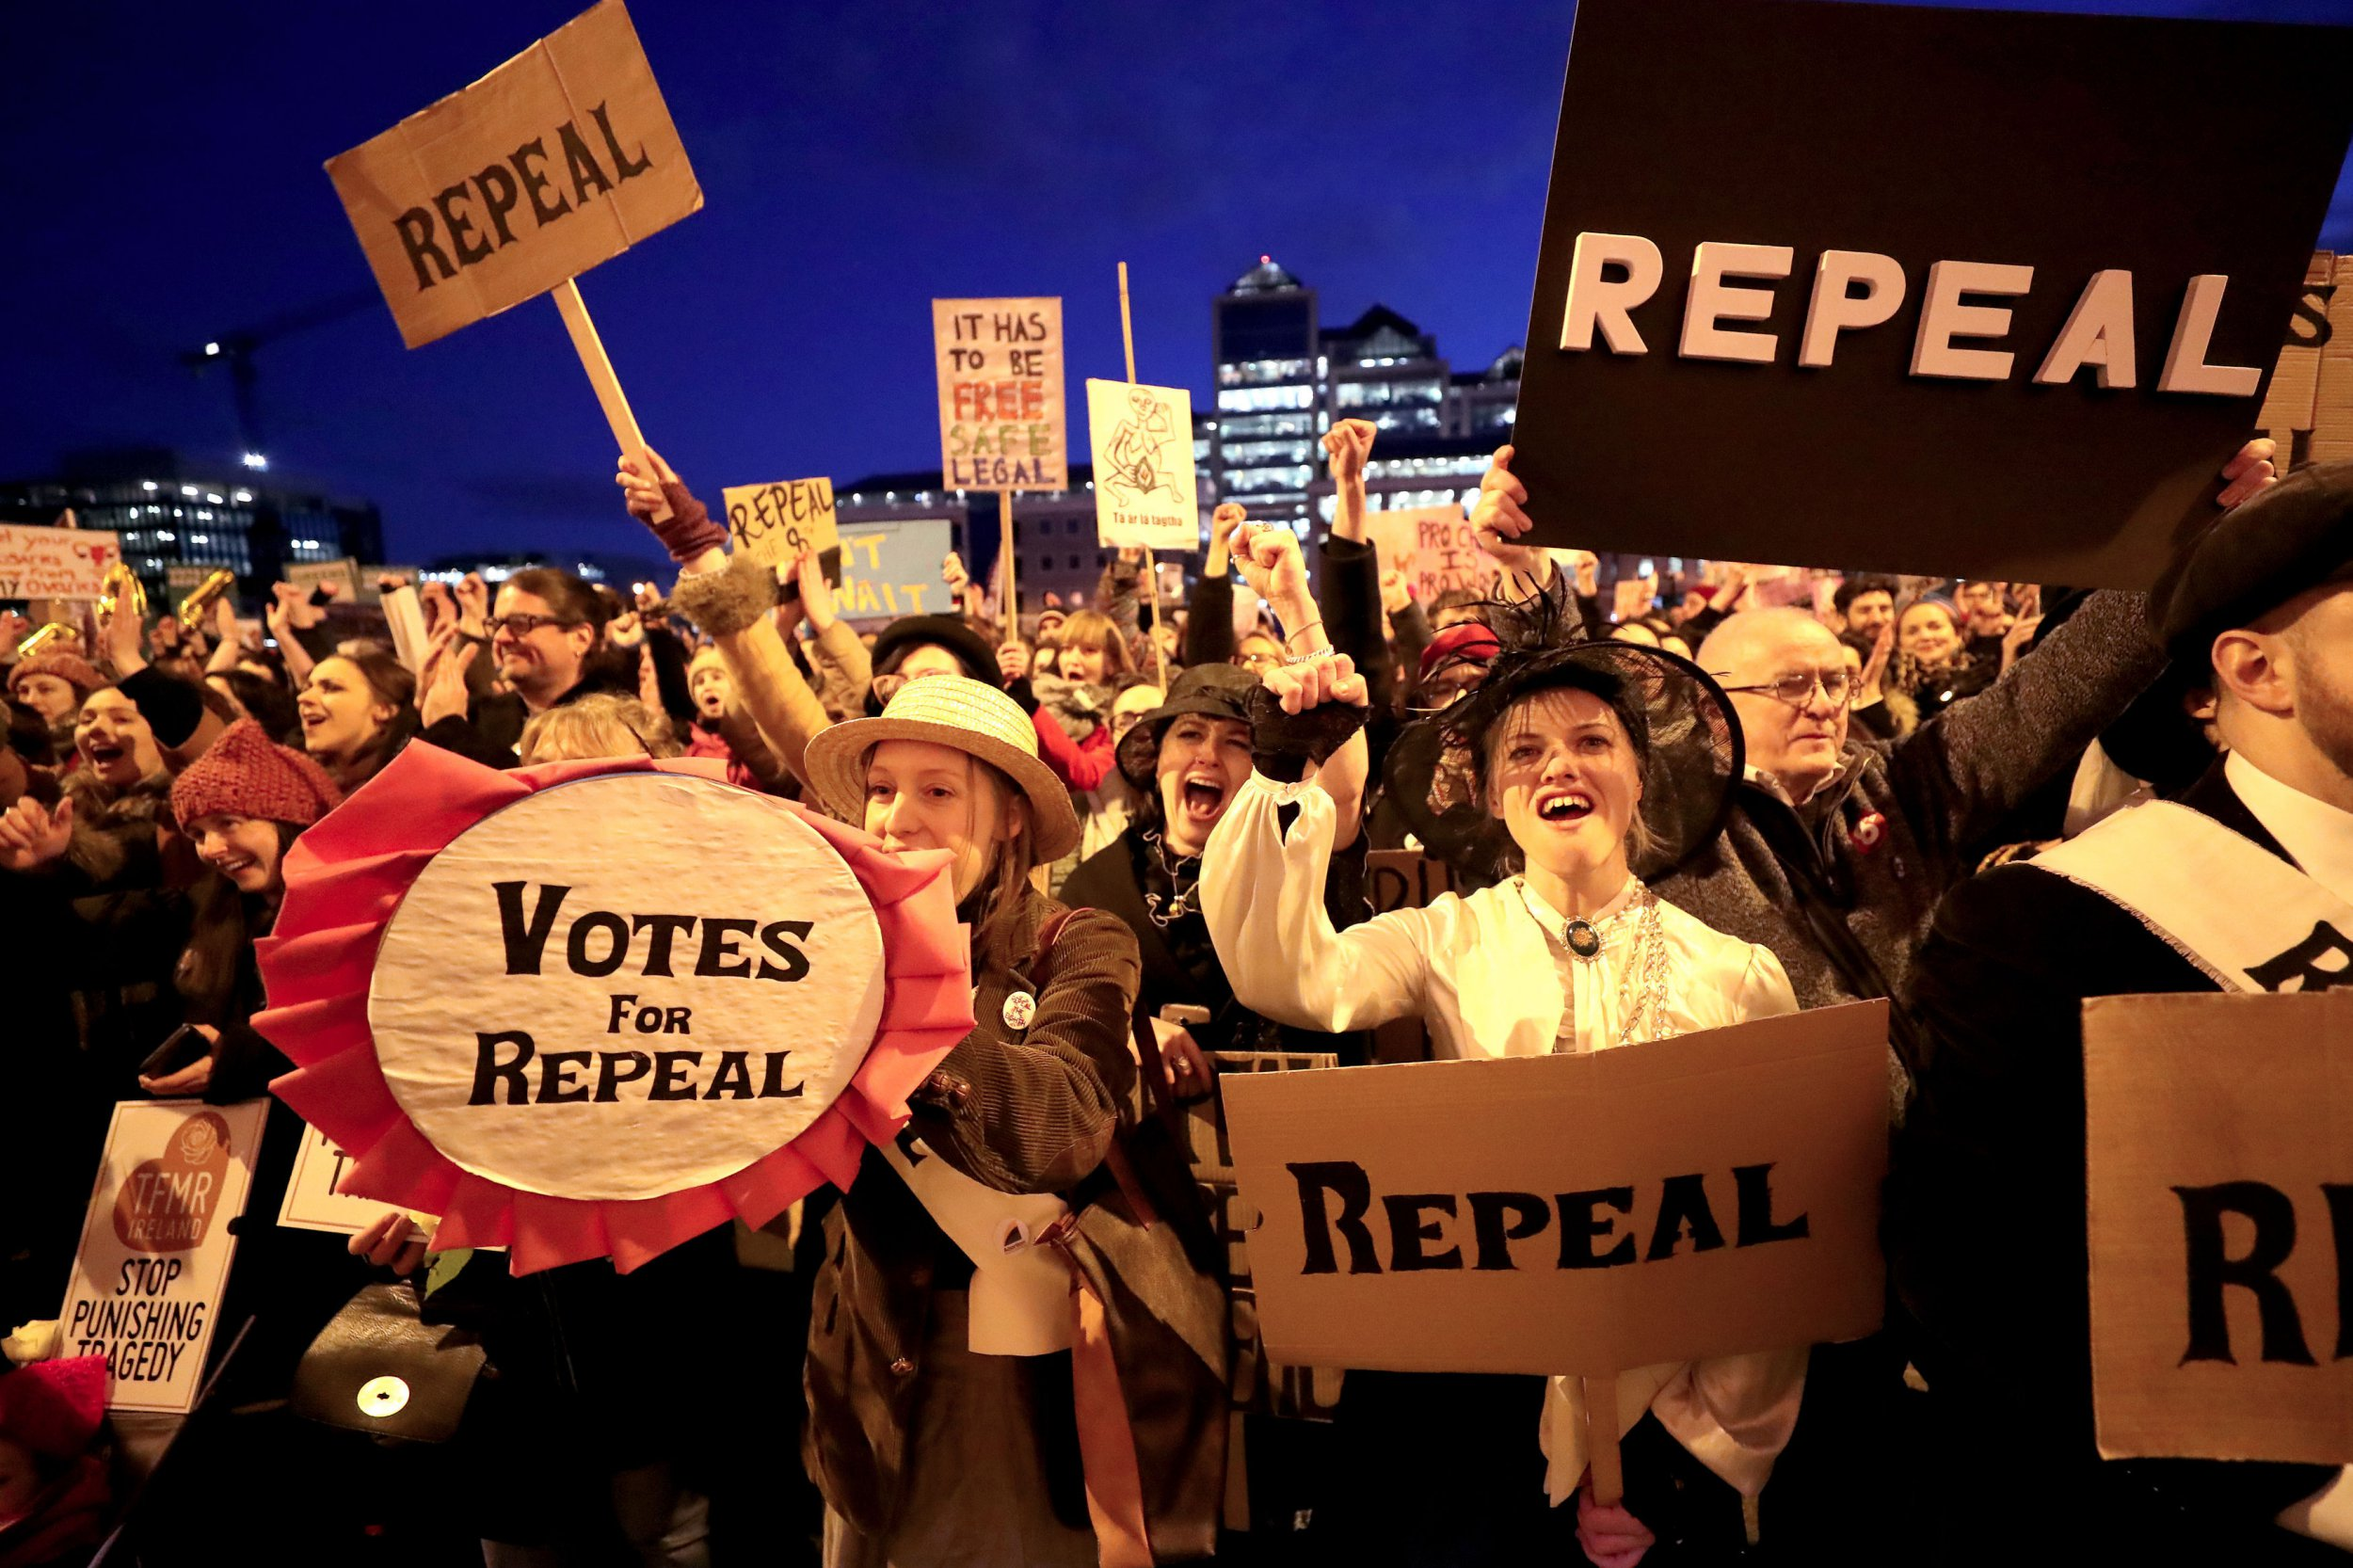 Campaign for 150-year-old abortion law in Northern Ireland to be repealed